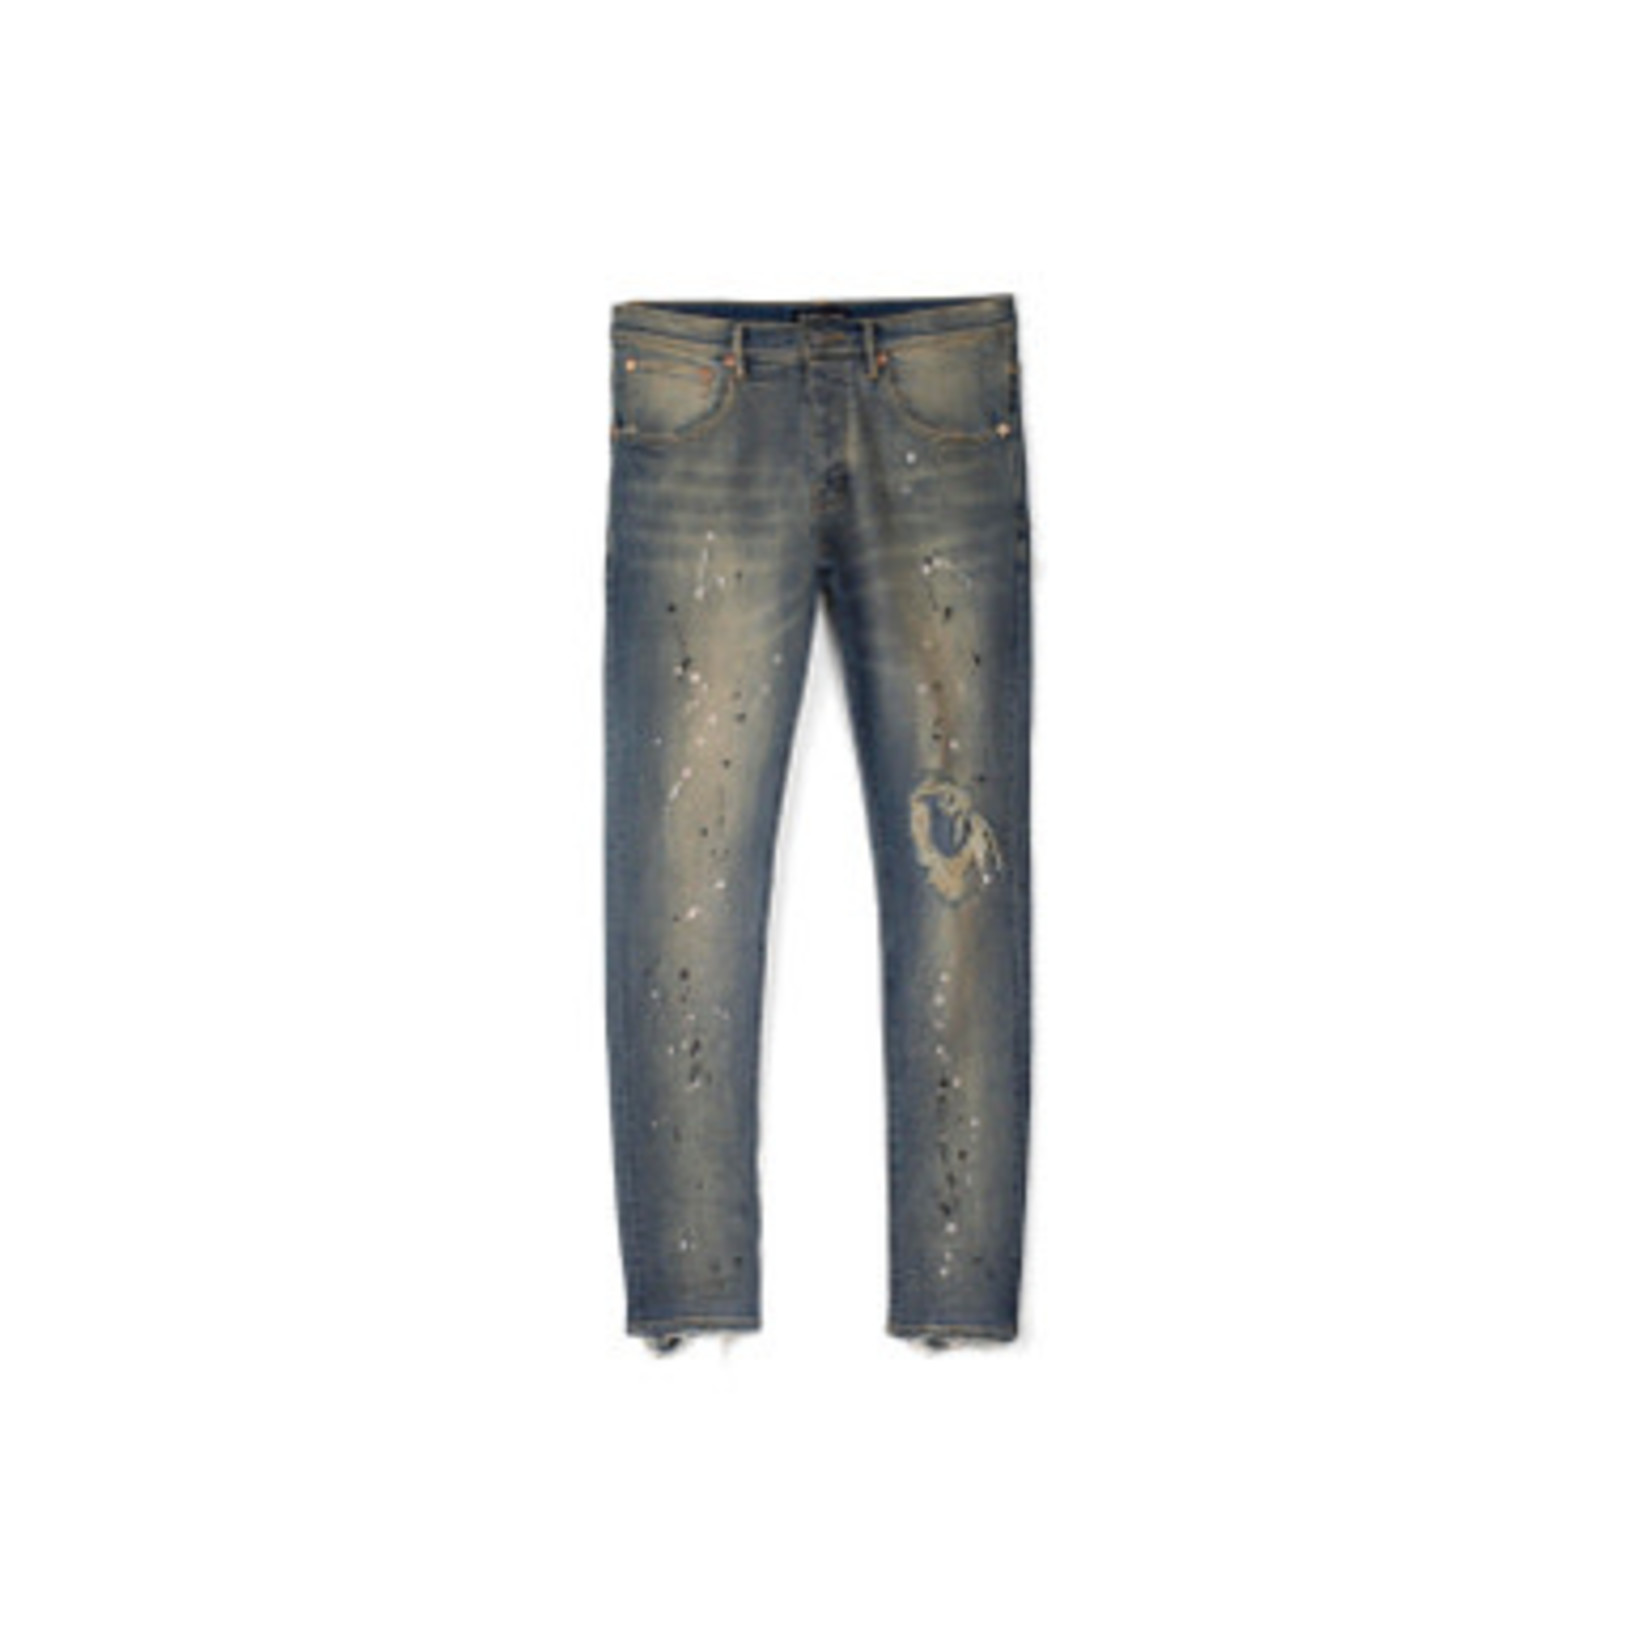 Purple Brand Dropped Fit Jeans